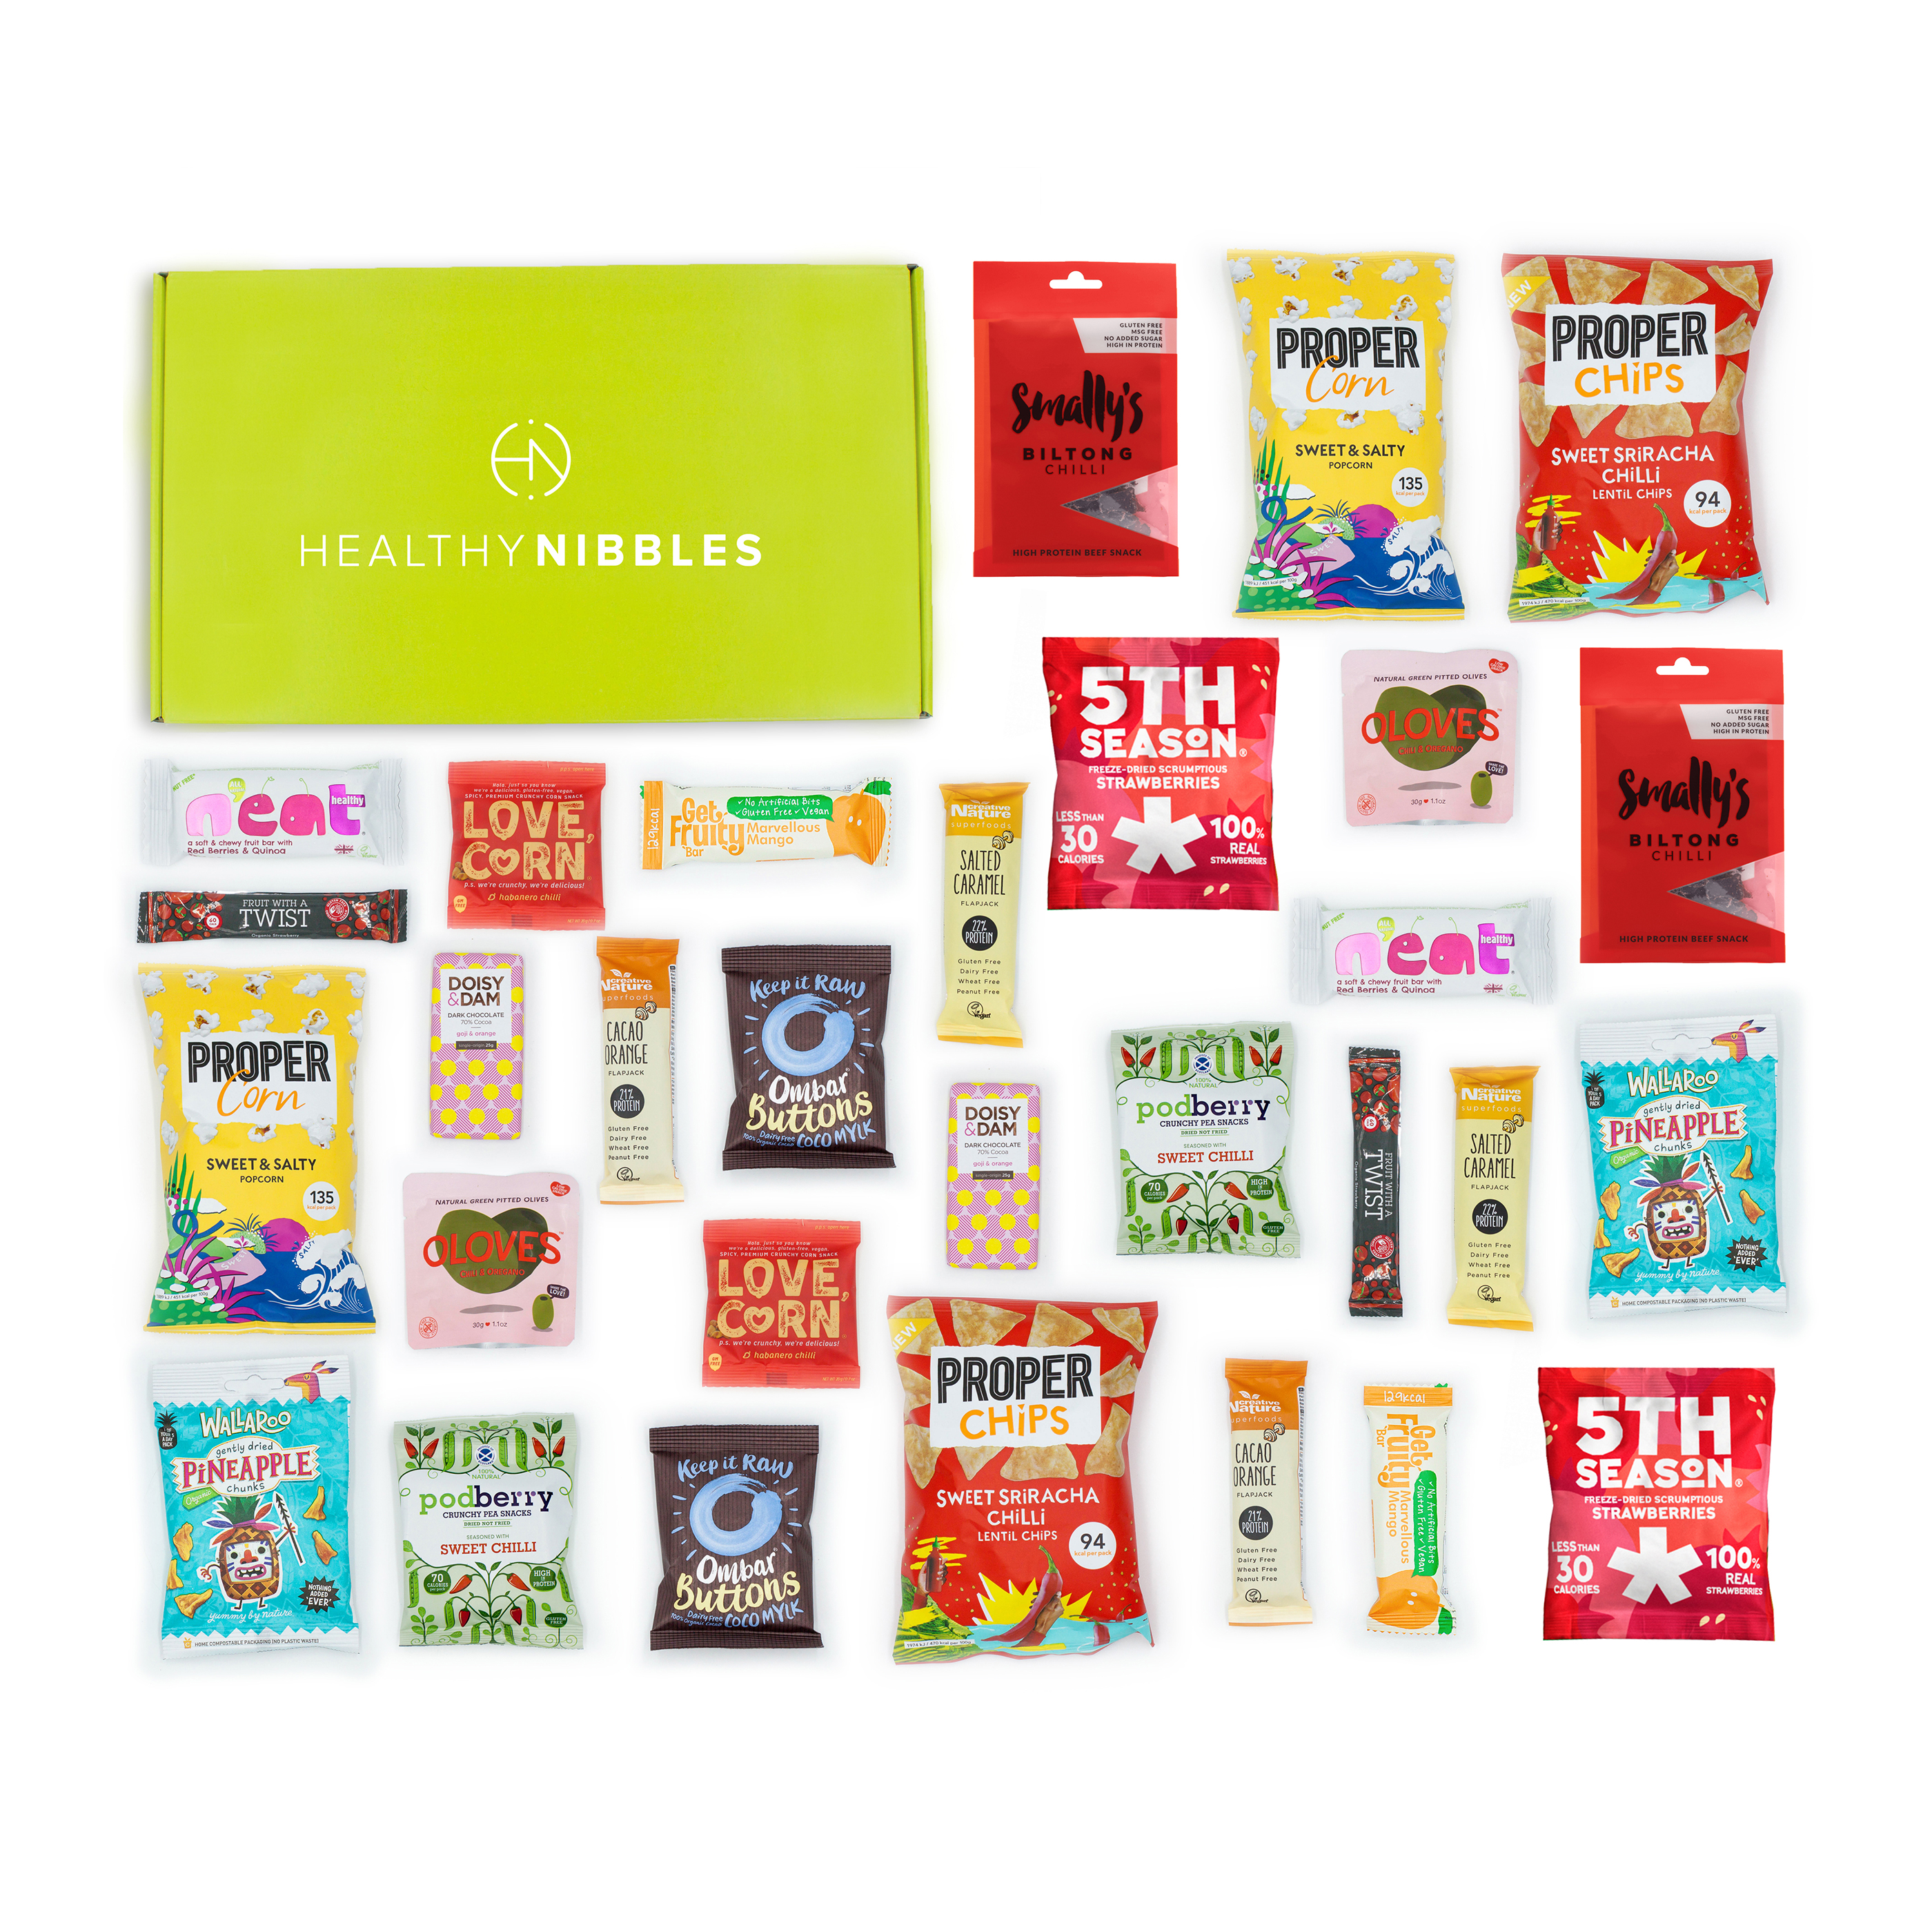 Limitless Healthy Nibbles Nut Free Snack 60 Piece Office Box Ref NutFree60 *Up to 2-3 Day Leadtime*